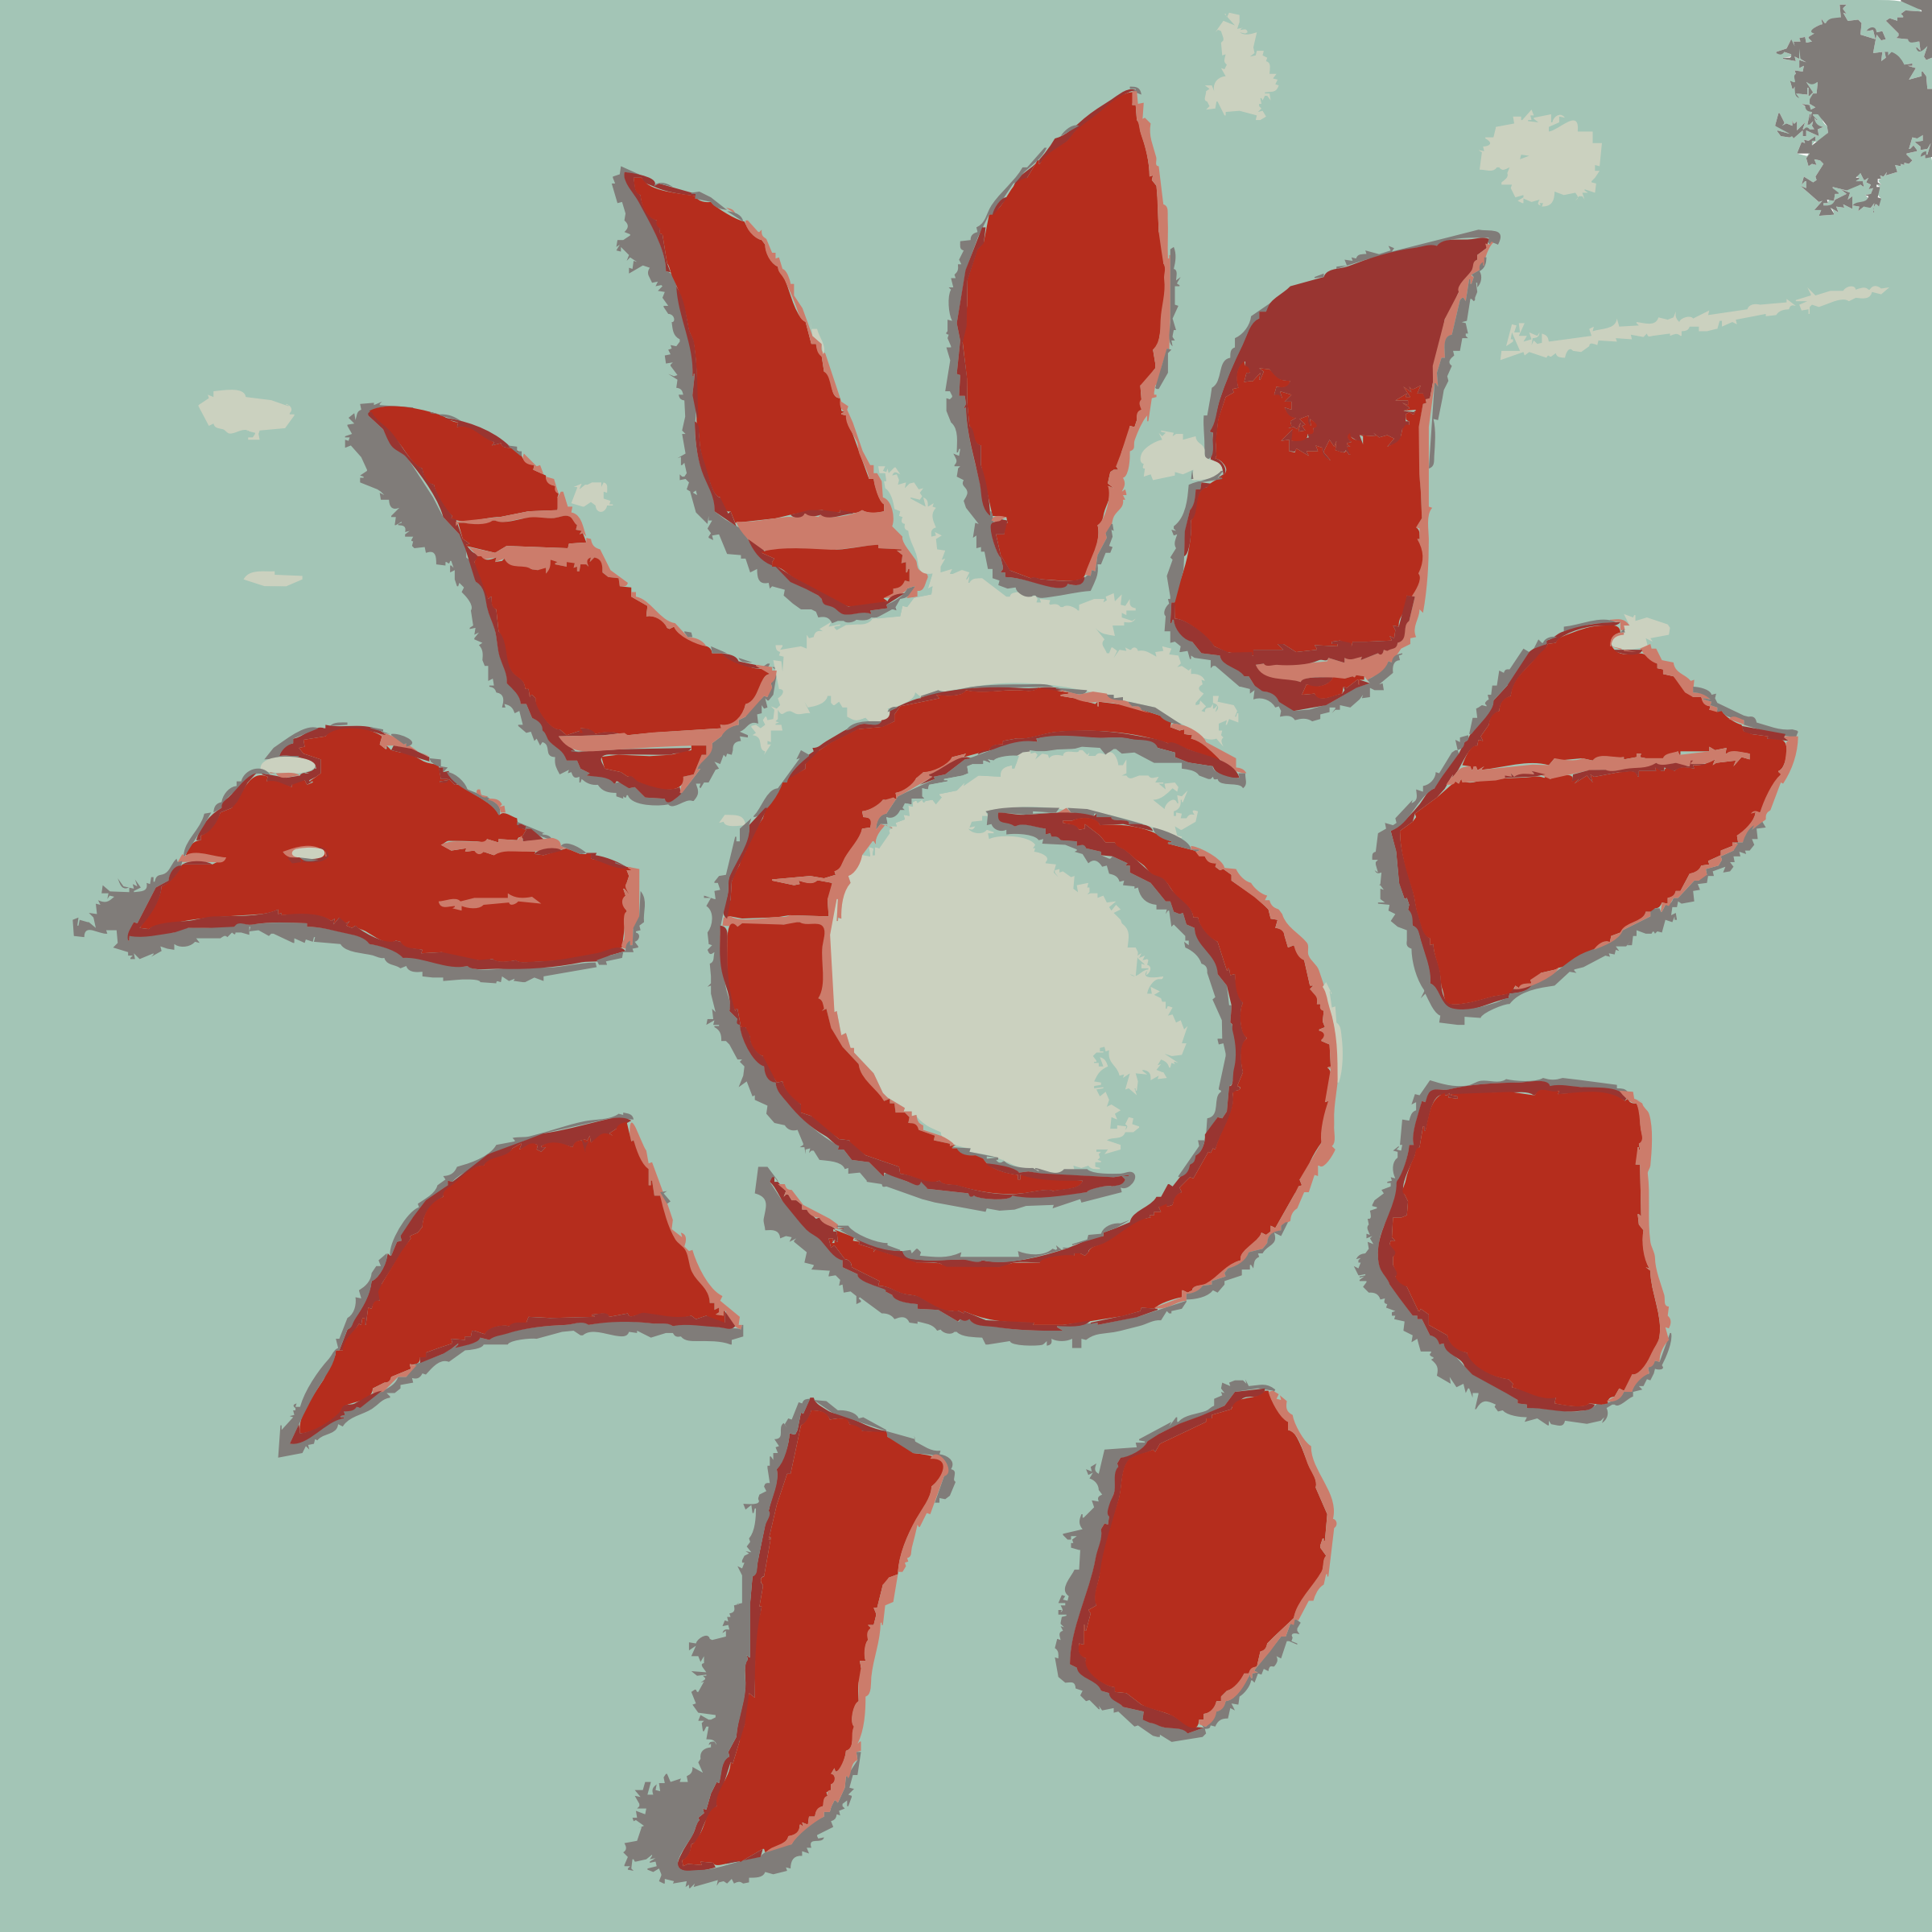 A sun icon by rejon